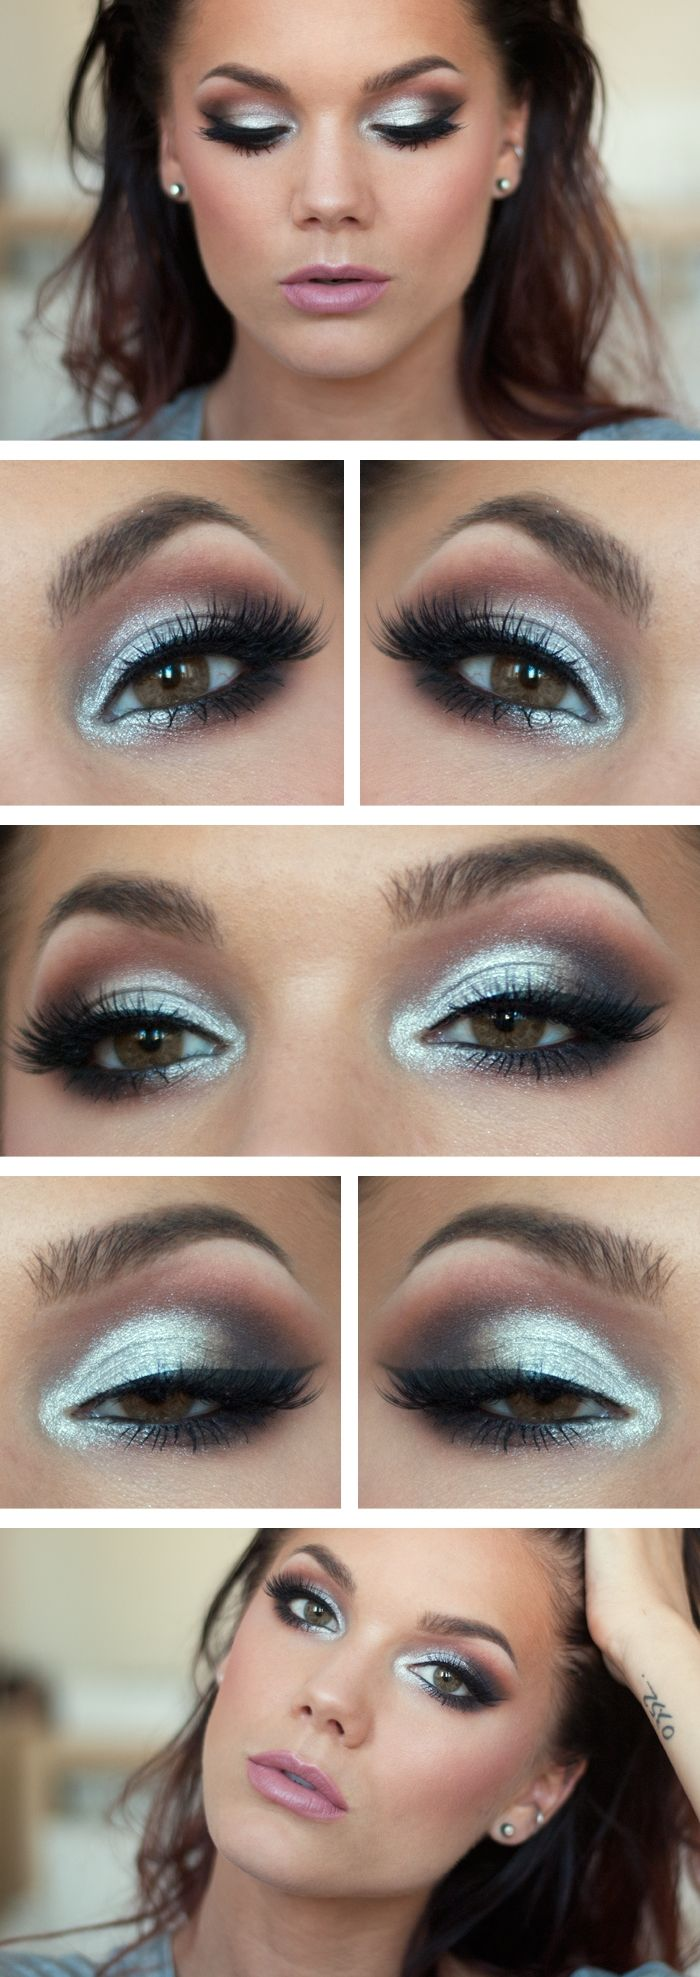 Linda Hallberg - incredible makeup artist from her daily makeup blog | inspiration for an upcoming project on www.adagio-images... or www.facebook.com/... | #makeup #makeupinspiration